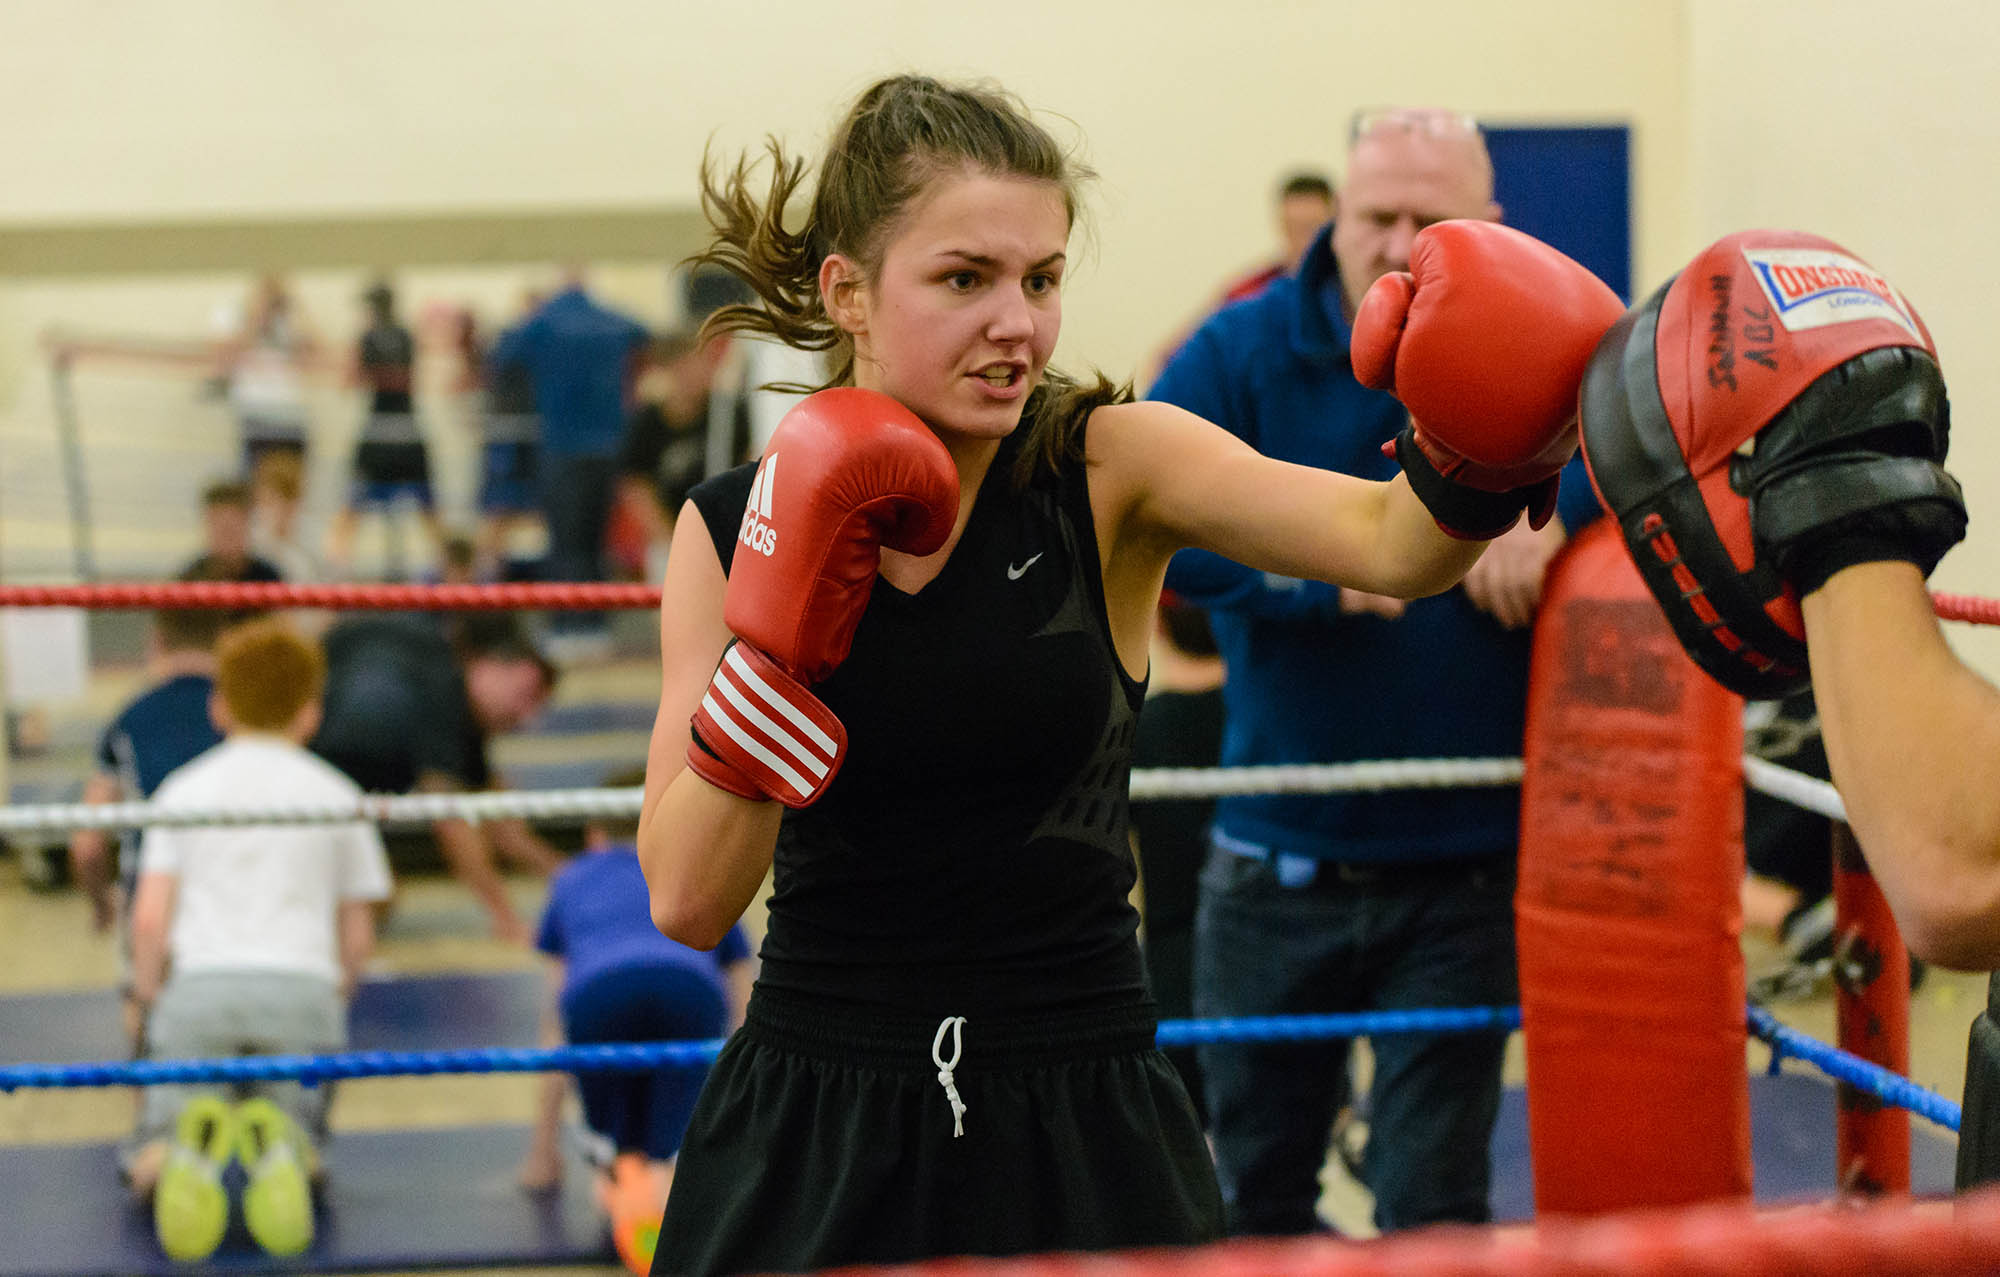 girl sparring in boxing ring